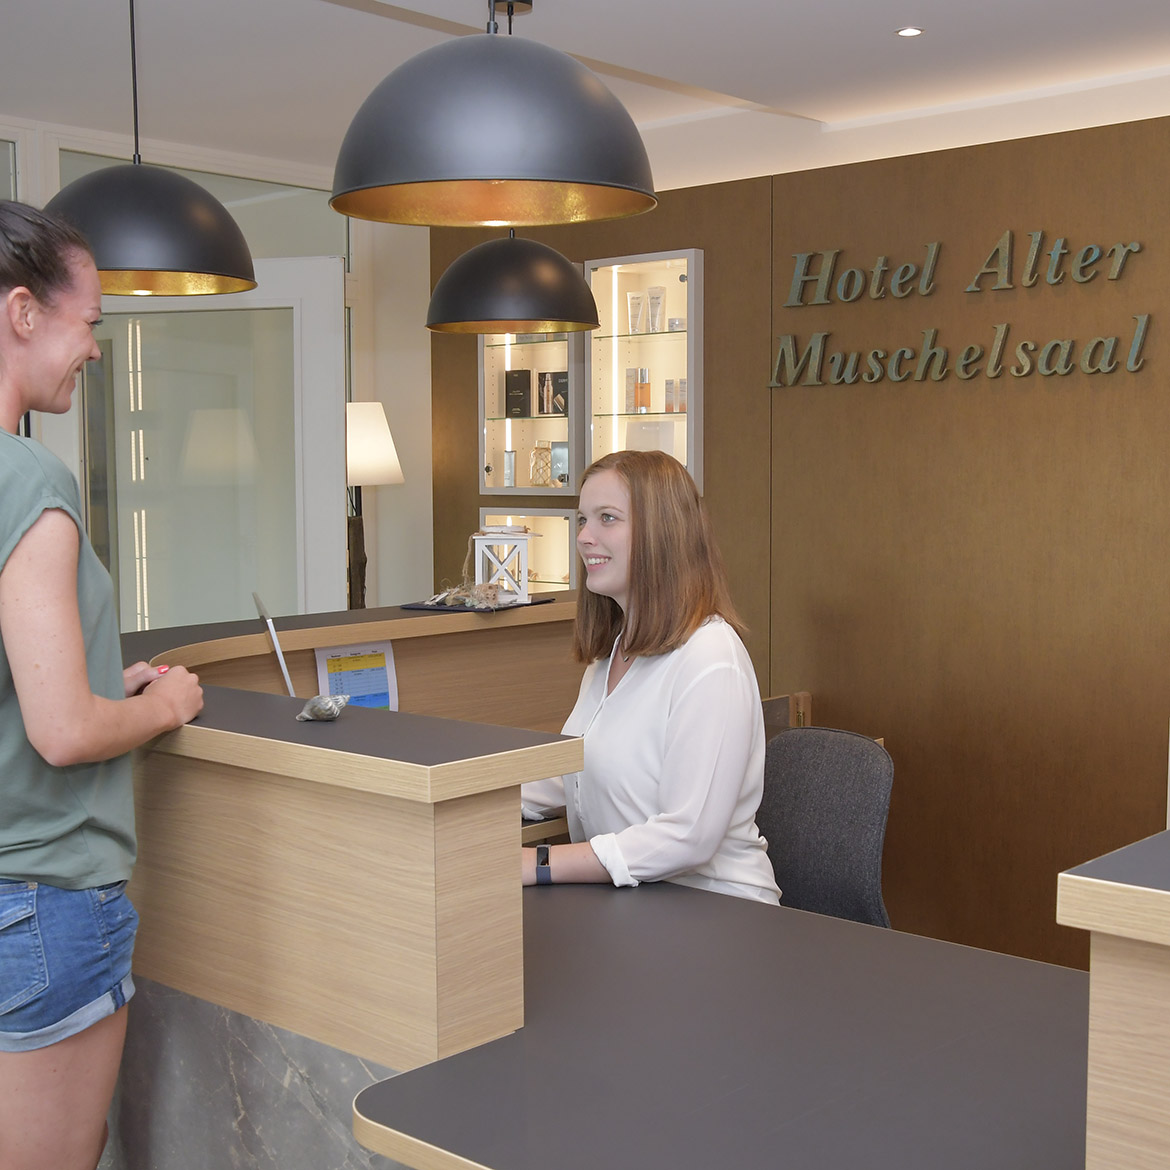 Hotel Check-In Alter Muschelsaal